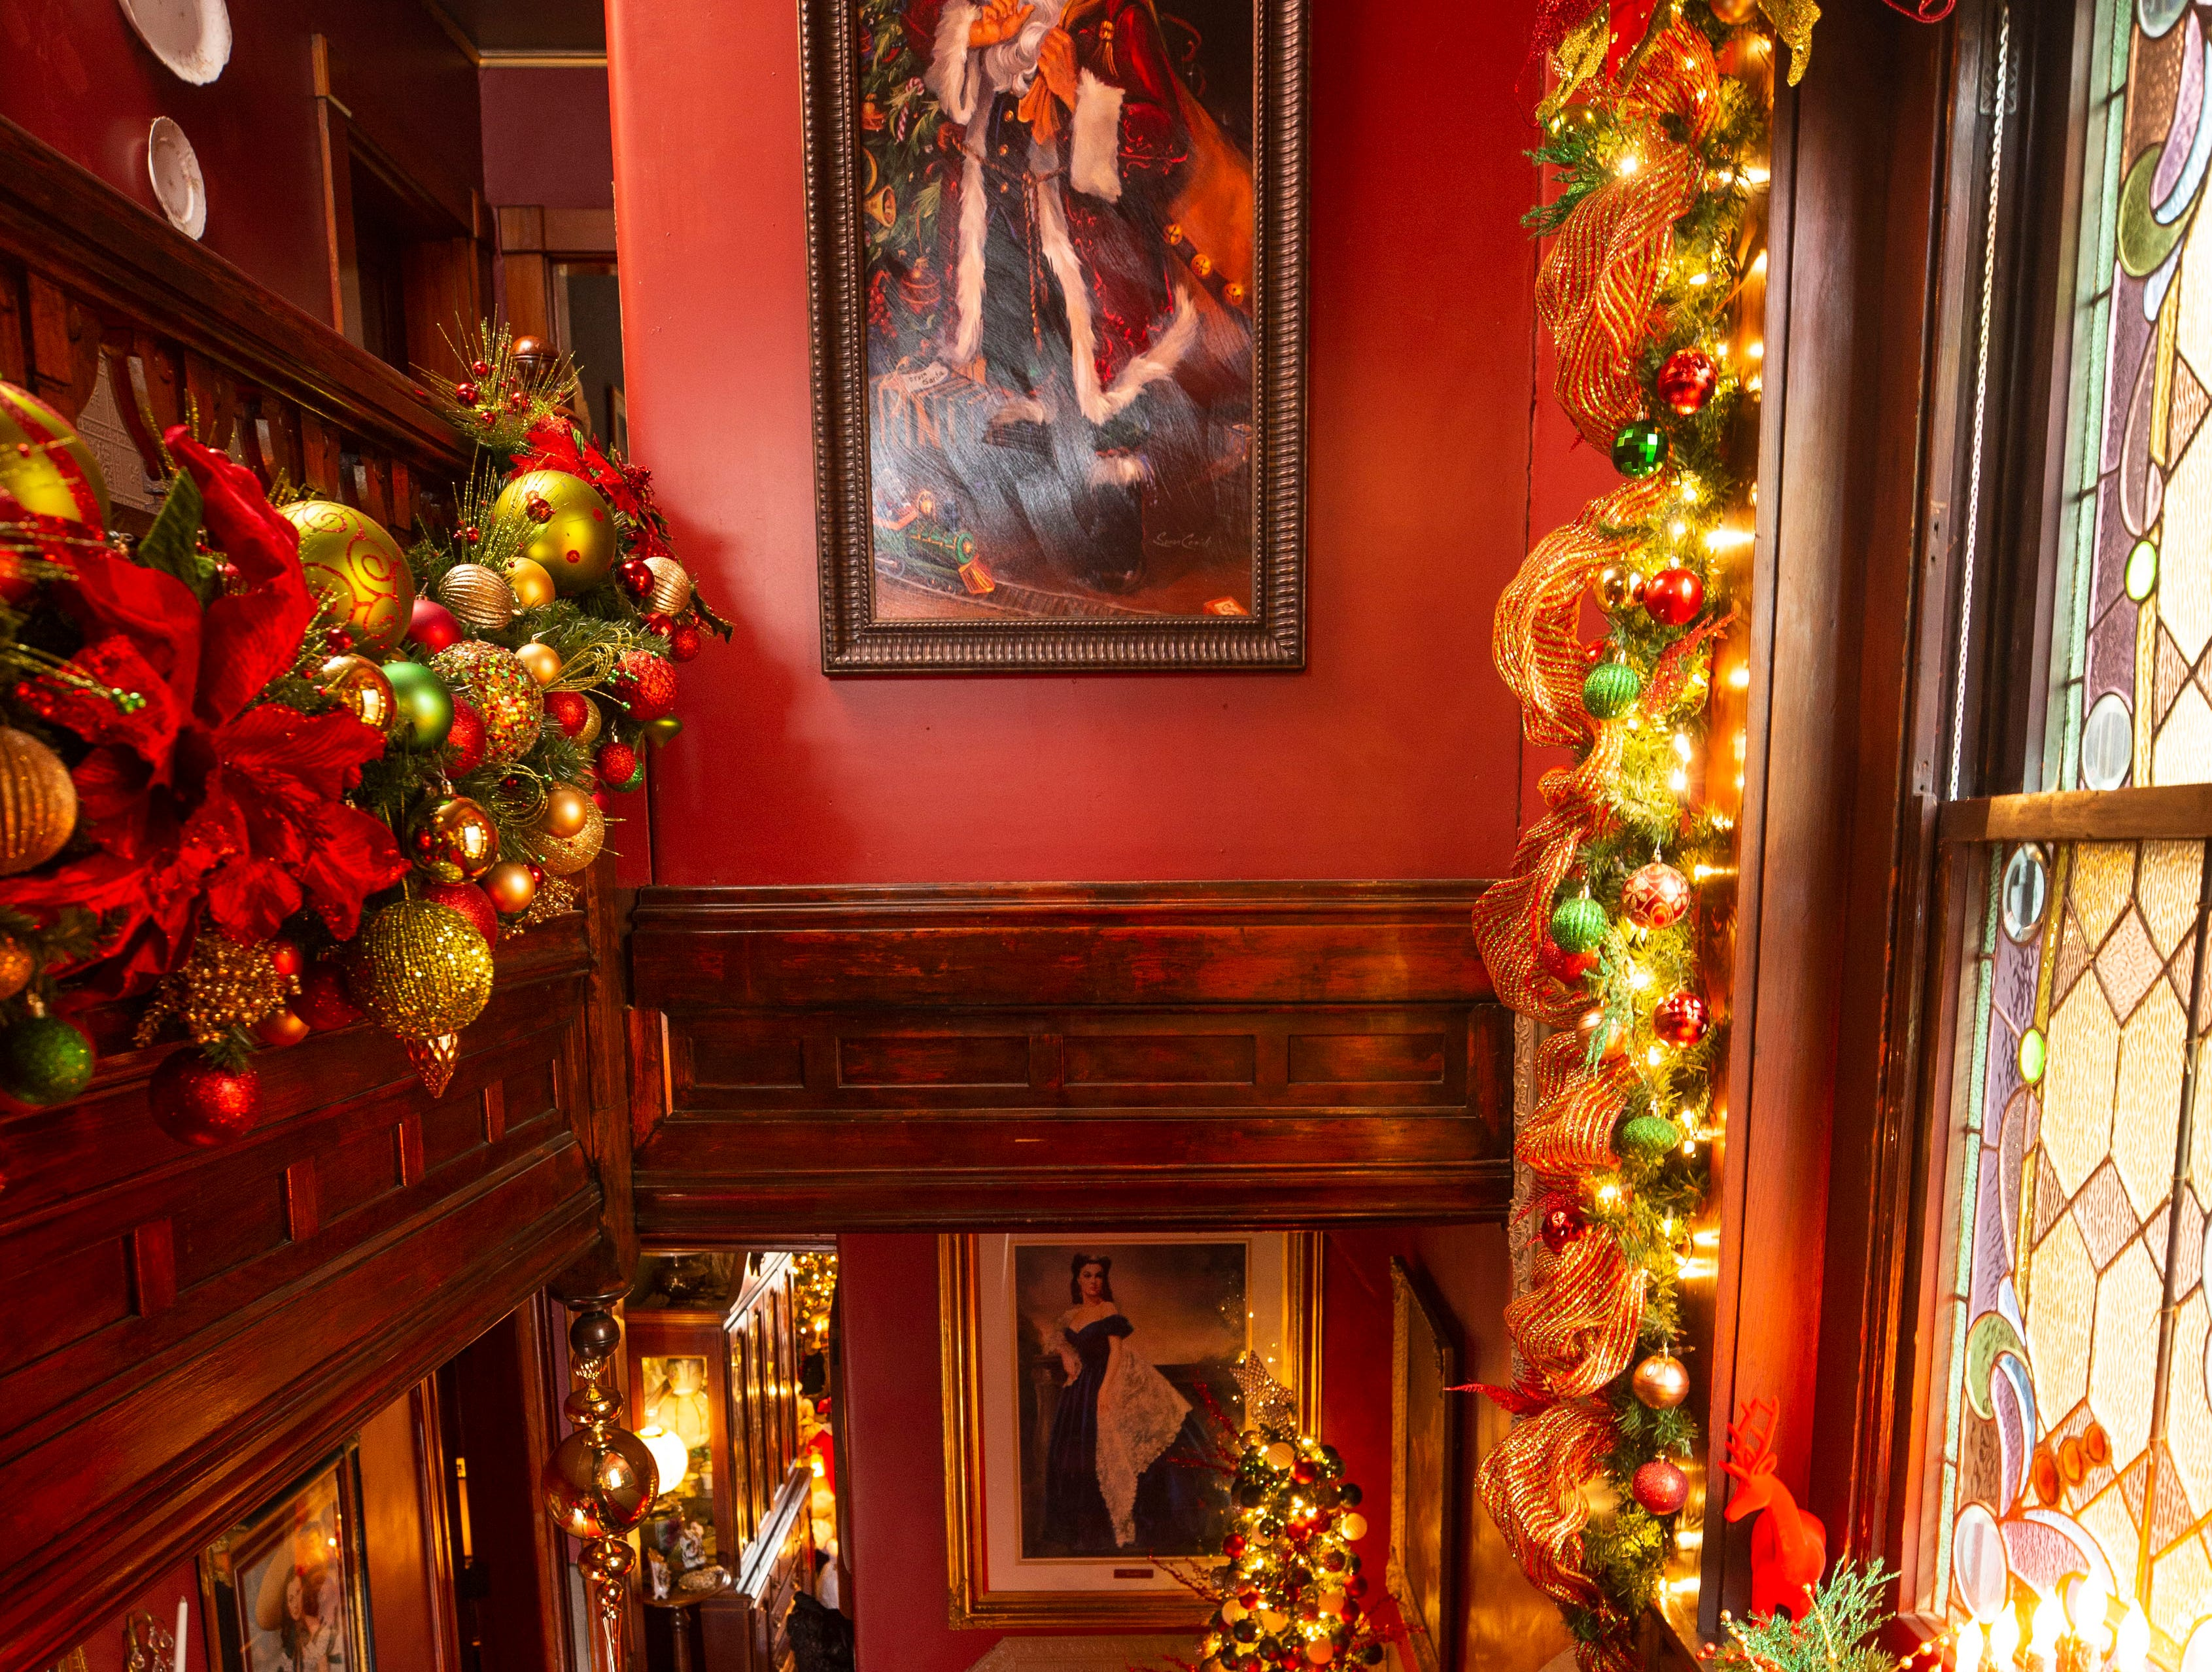 David Brown spends about 20 to 30 hours a week decorating the 6,000-square foot, three-story home, including the stairs with more than 7,000 ornaments.